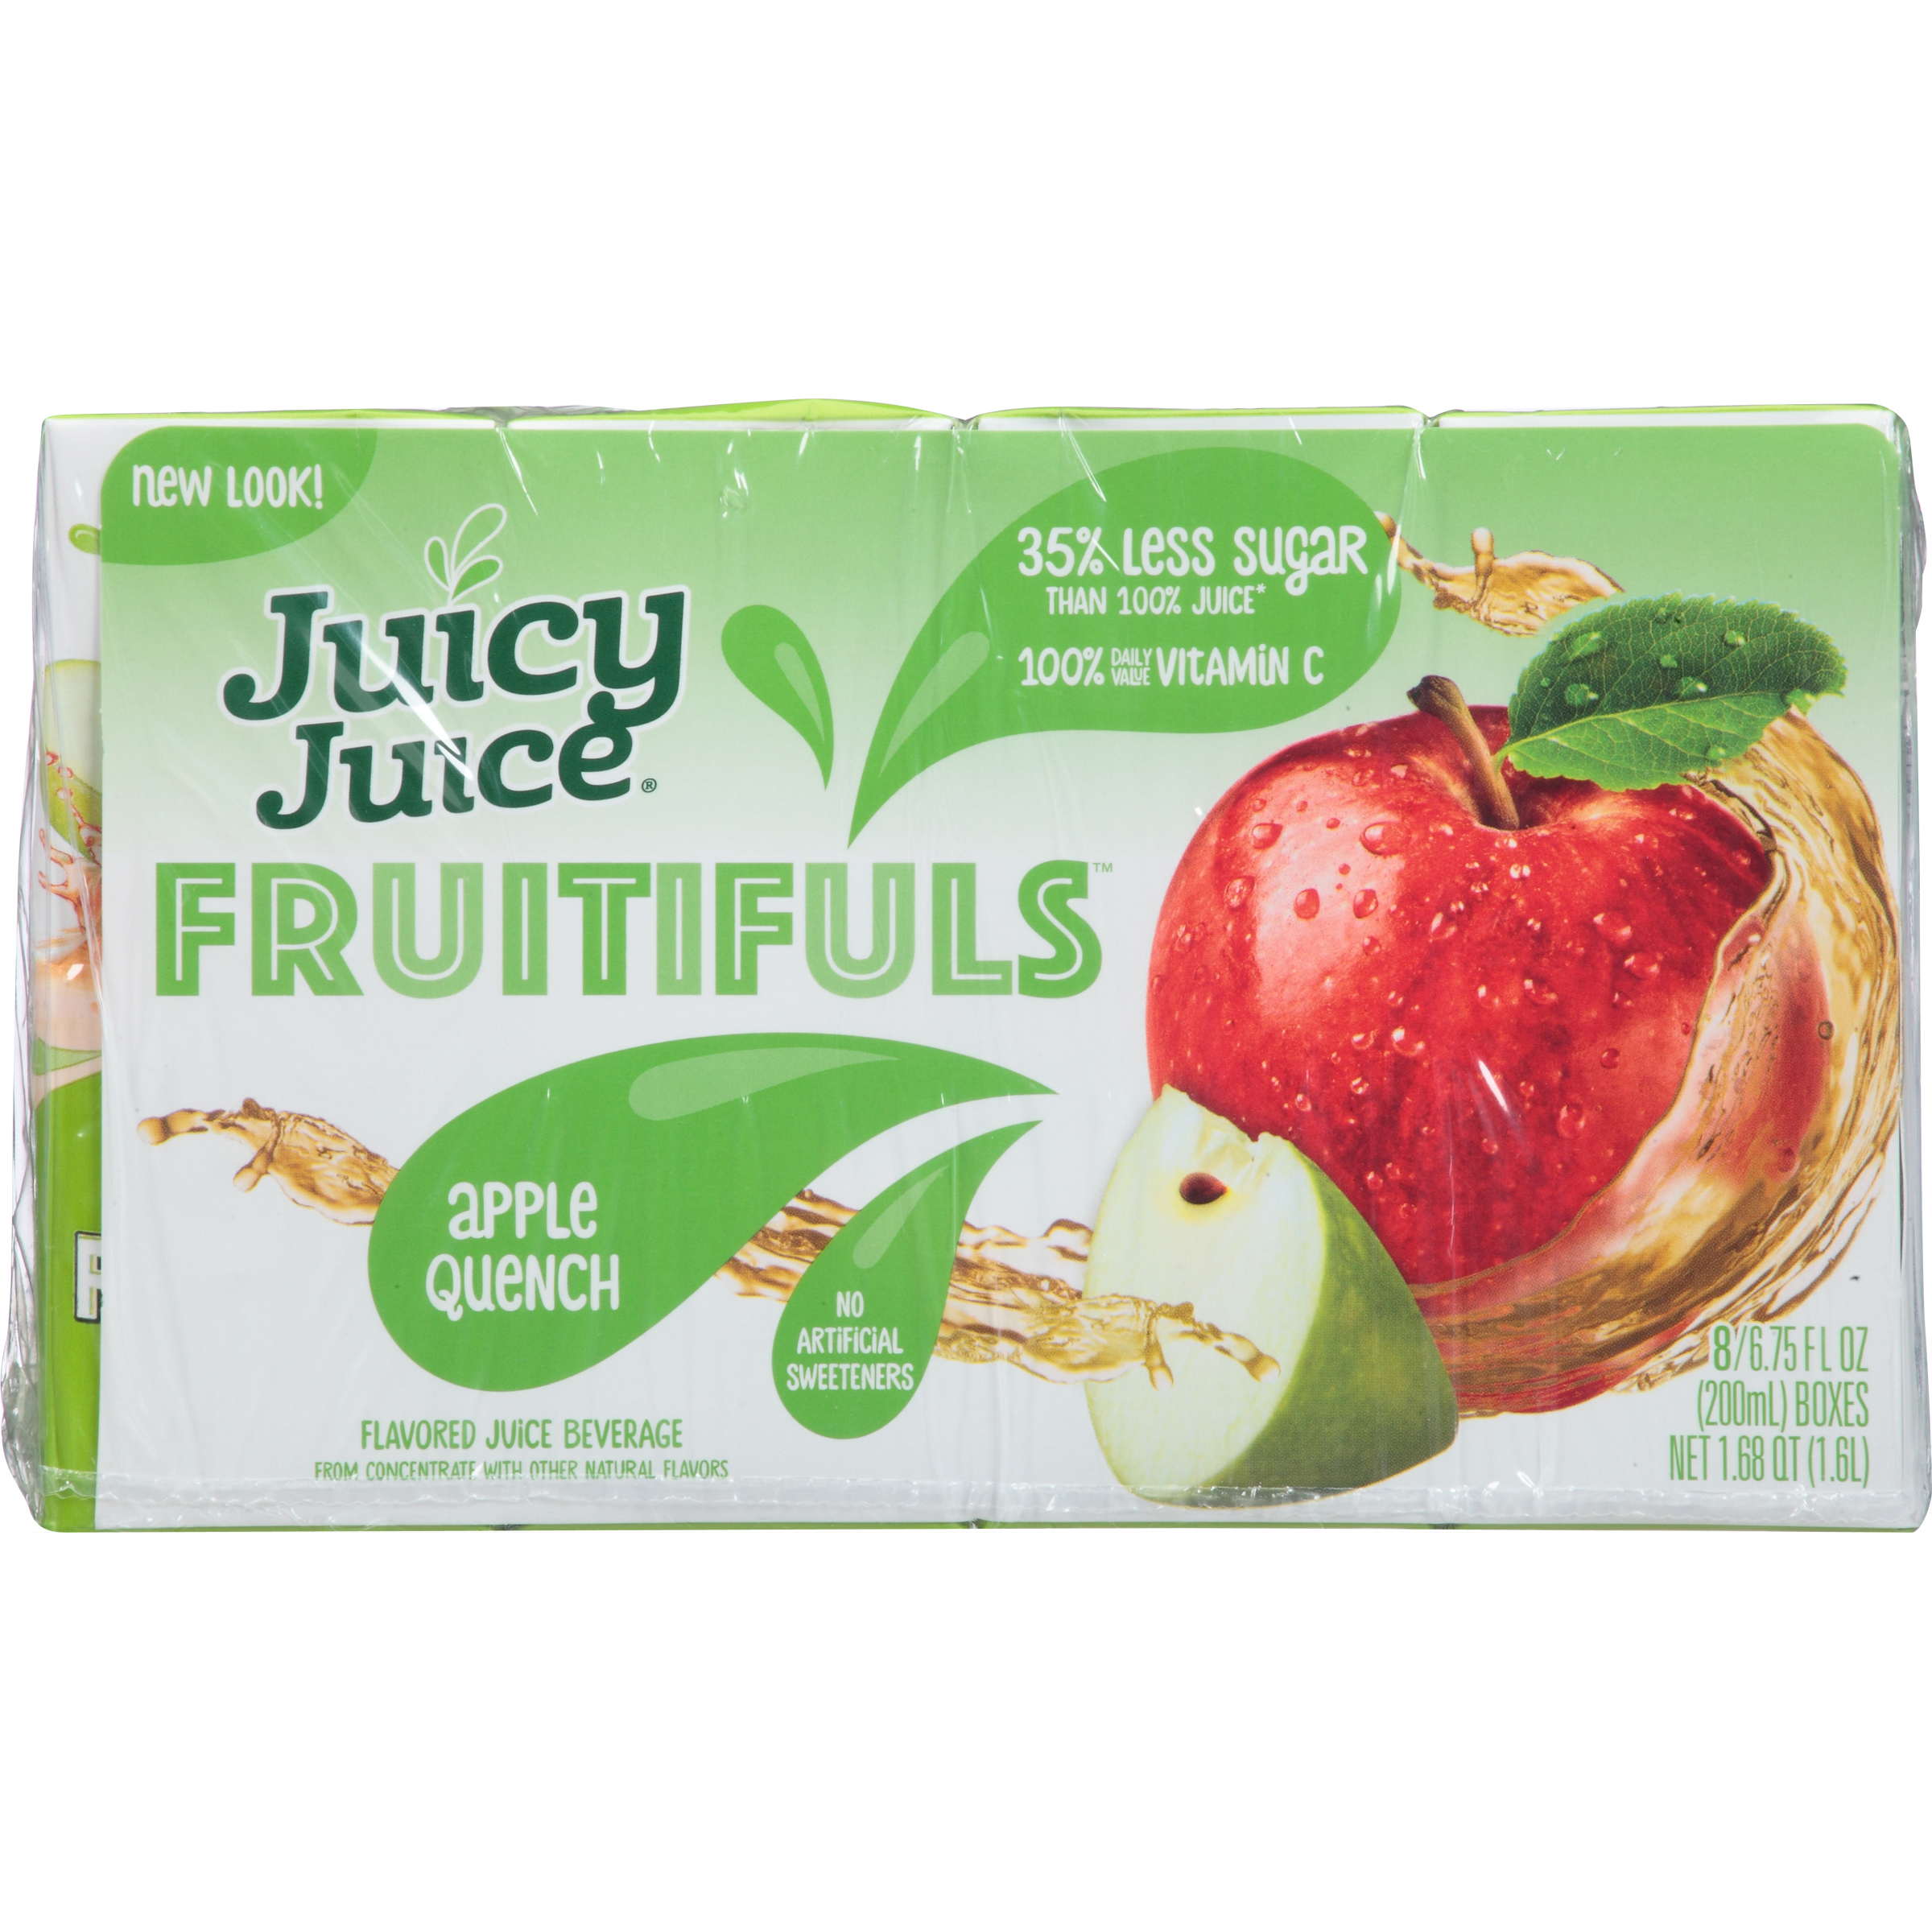 Juicy Juice Organic Fruitifuls, Apple Quench, 6.75 Fl Oz, 8 Count